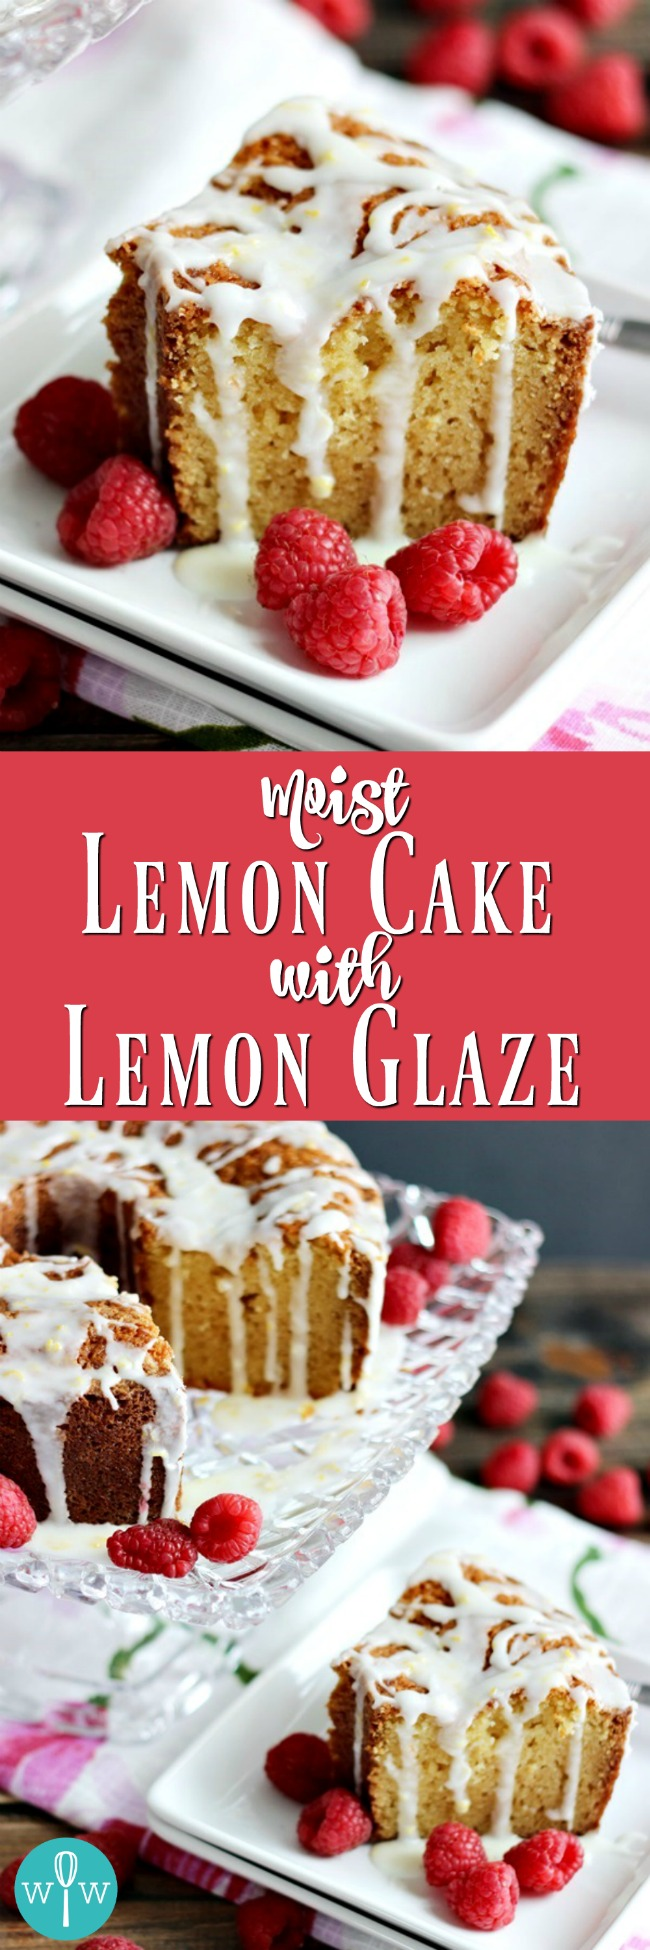 Moist Lemon Cake With Lemon Glaze